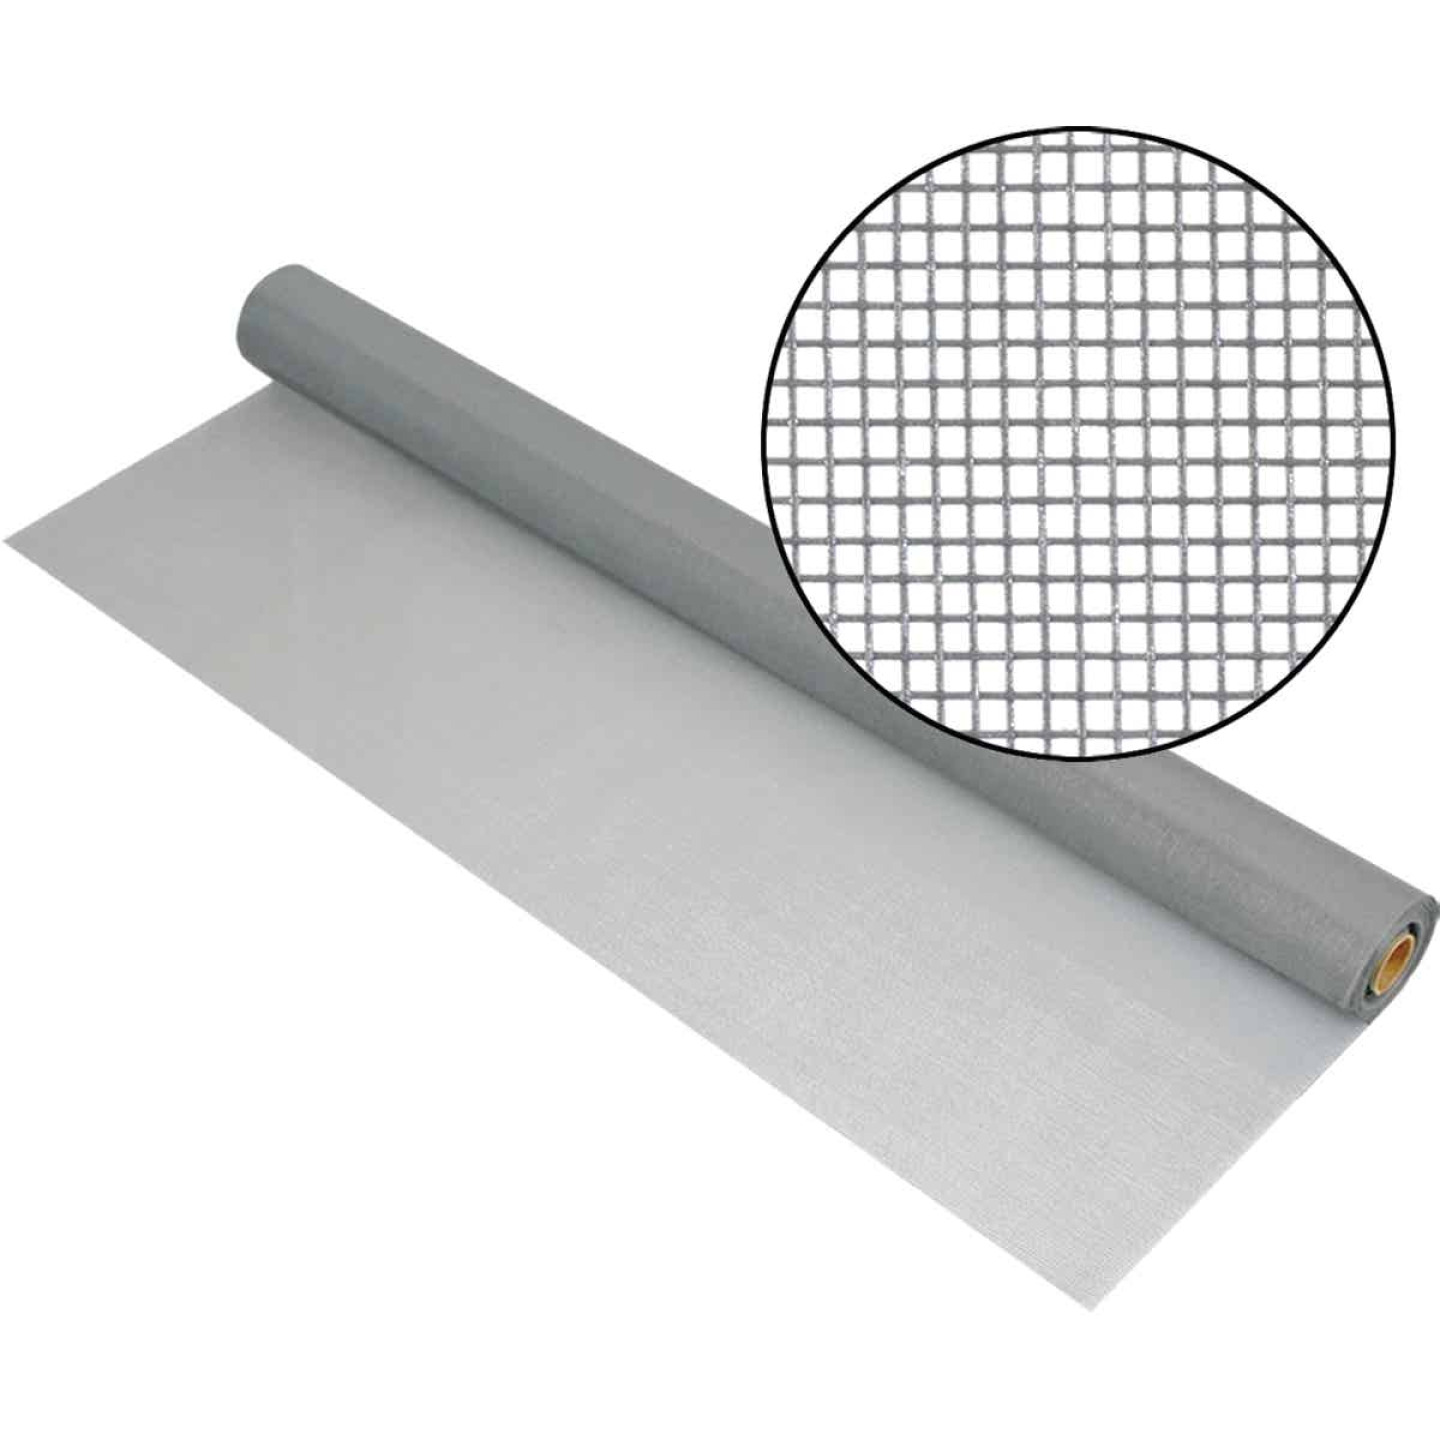 Phifer 60 In. x 100 Ft. Gray Fiberglass Mesh Screen Cloth Image 1